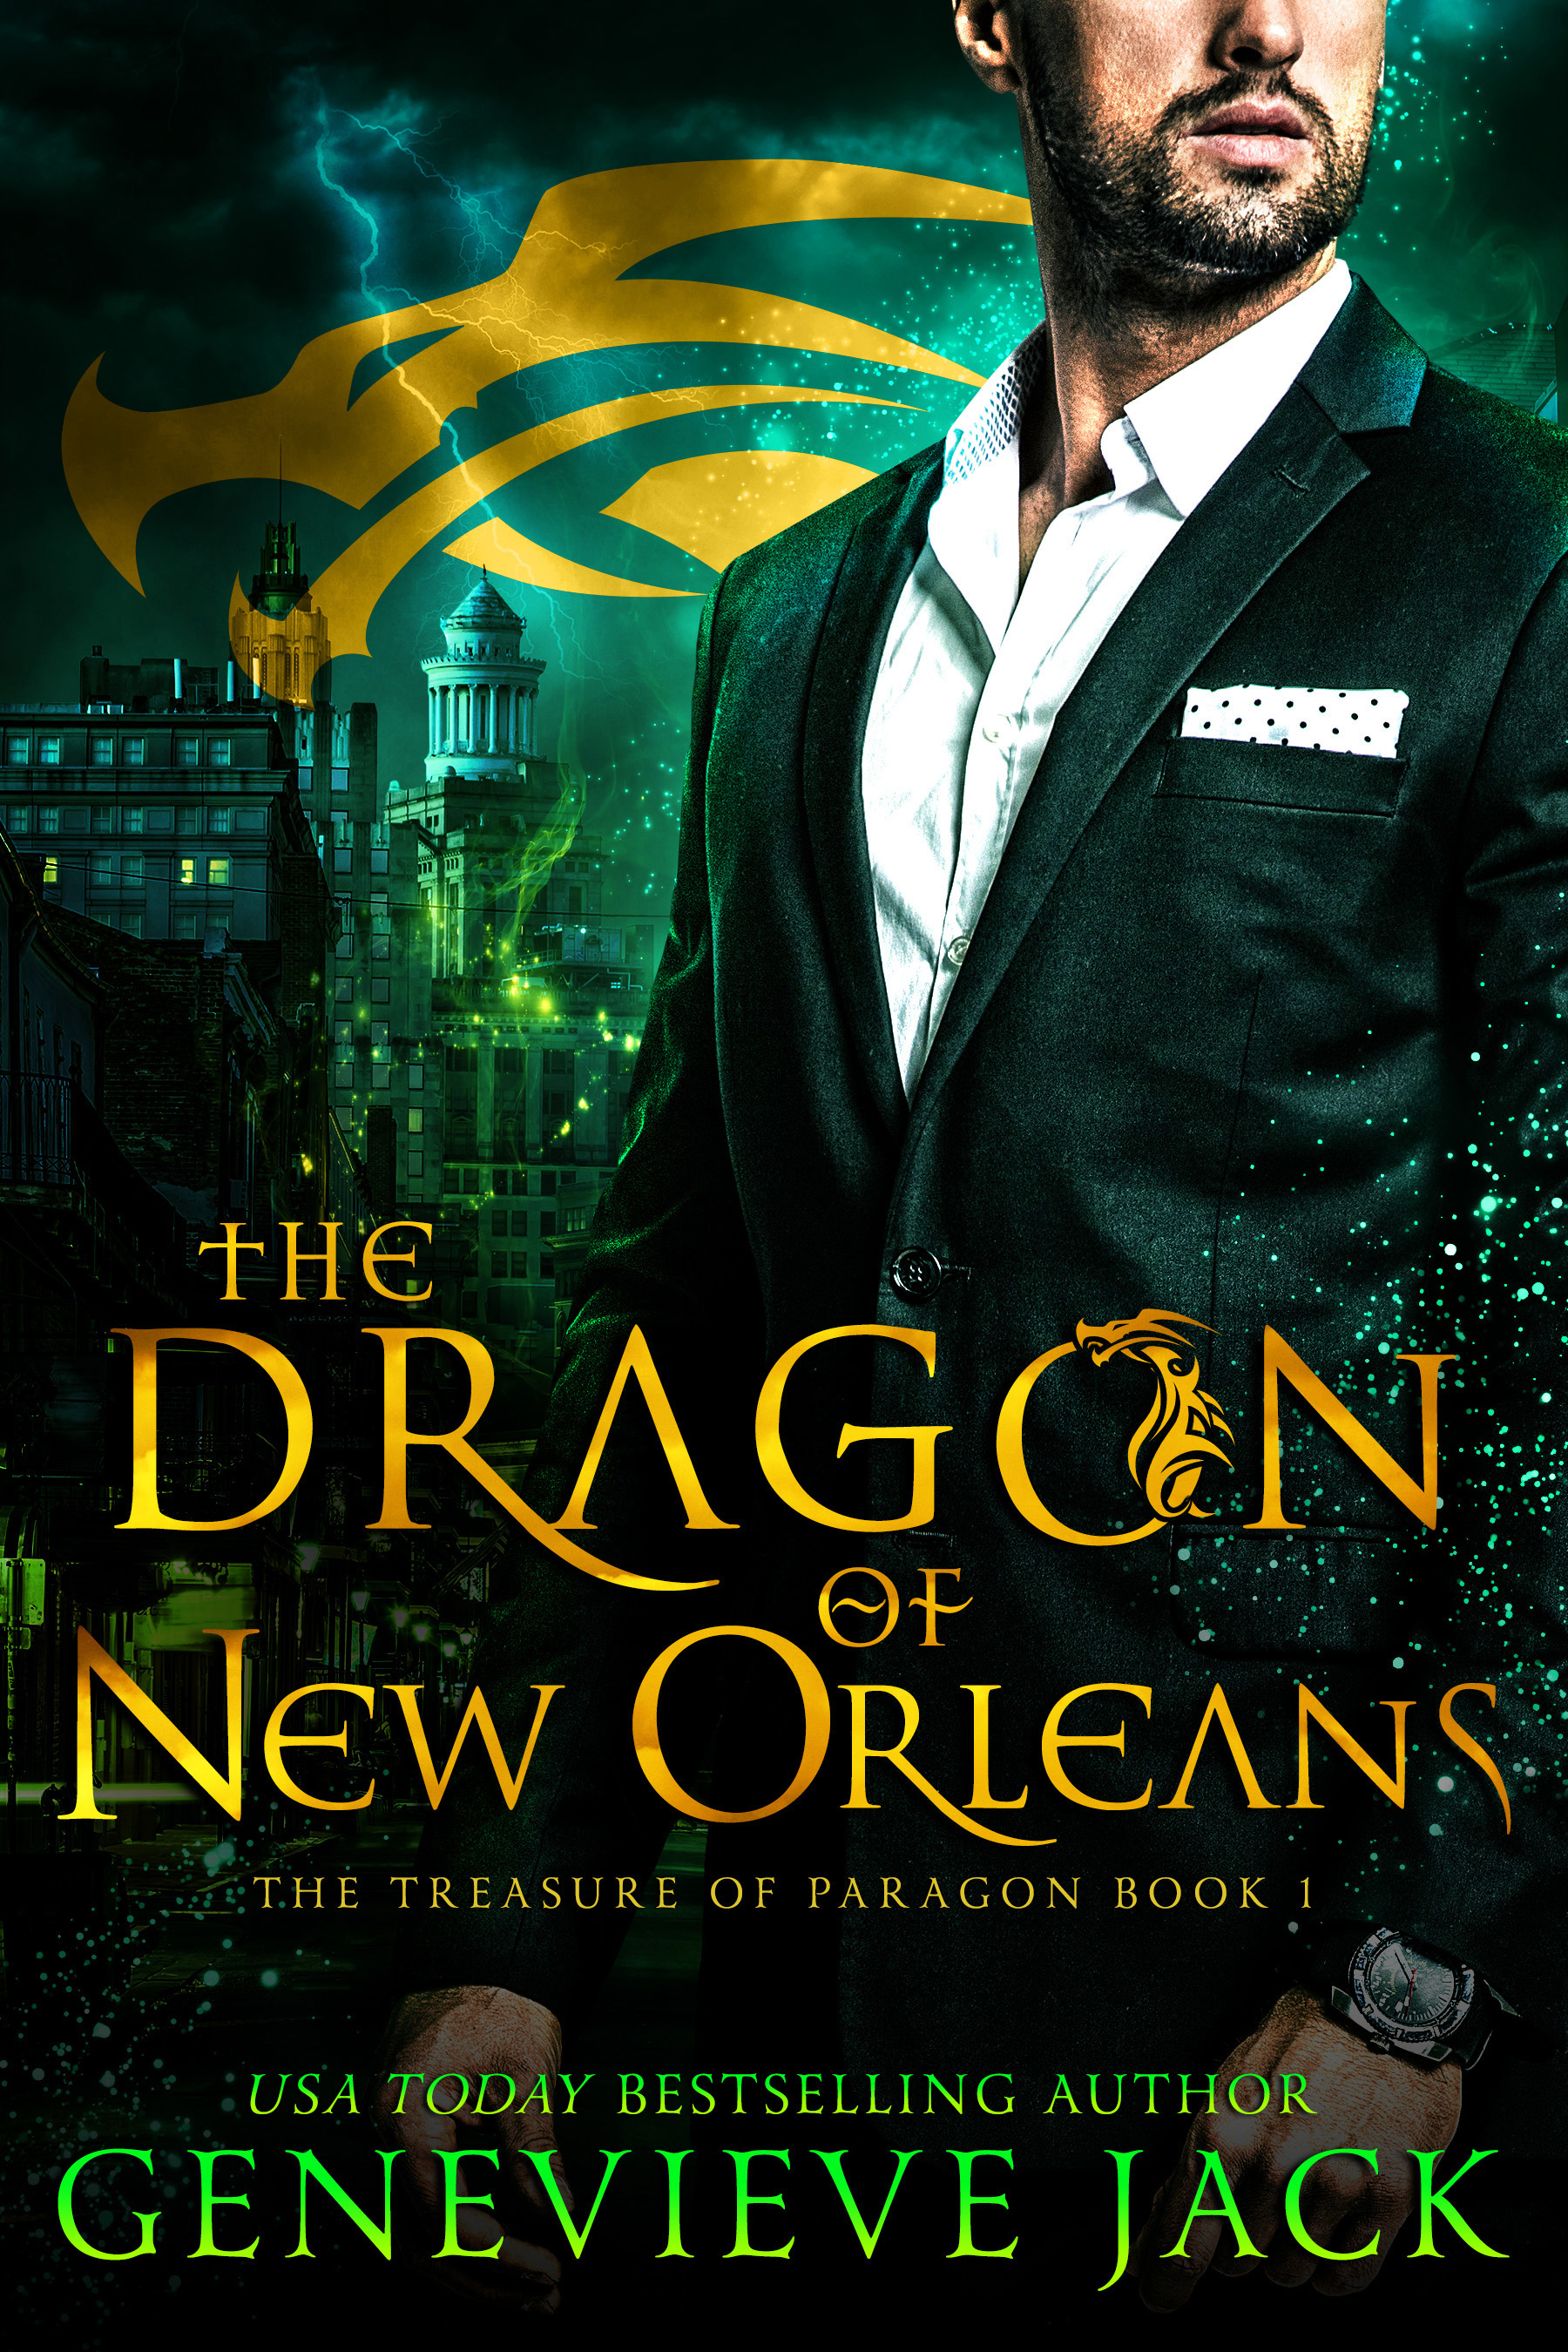 The Dragon of New Orleans - by Genevieve Jack